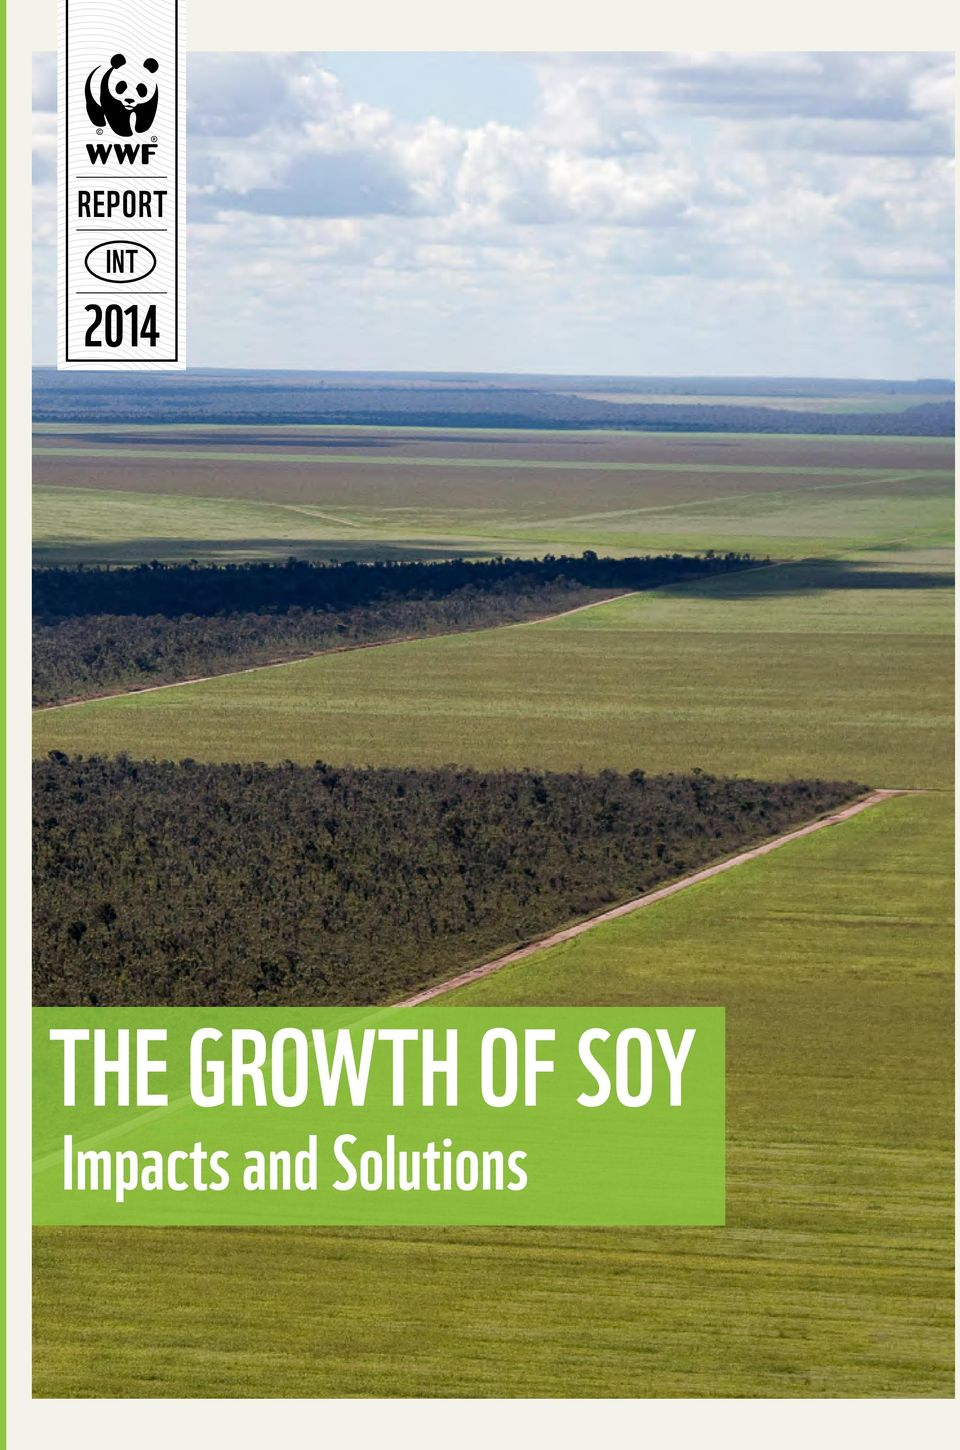 Growth of Soy